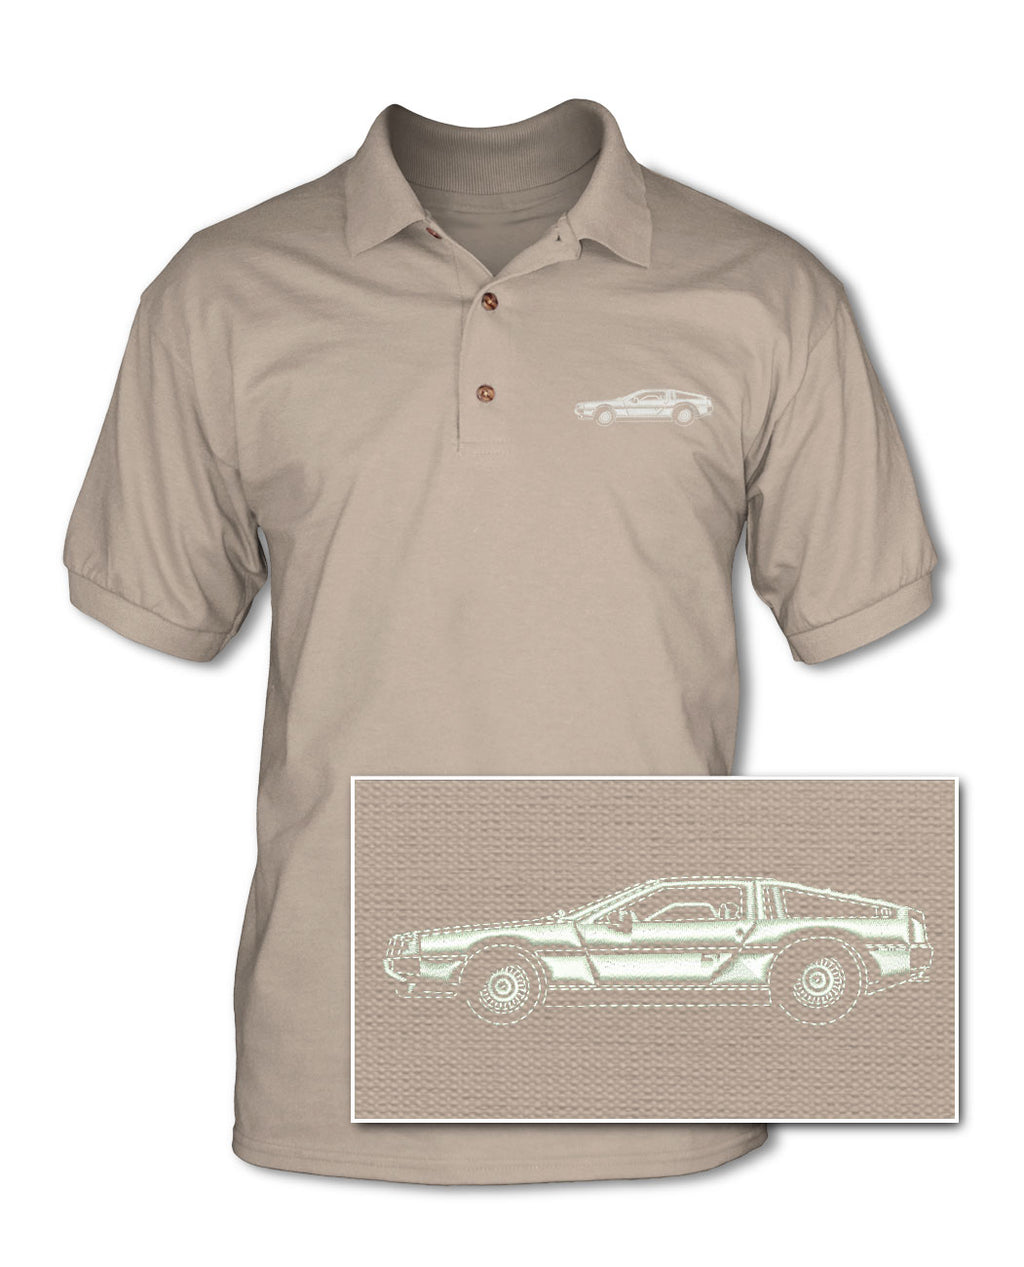 1981 DeLorean DMC-12 Coupe Adult Pique Polo Shirt - Side View